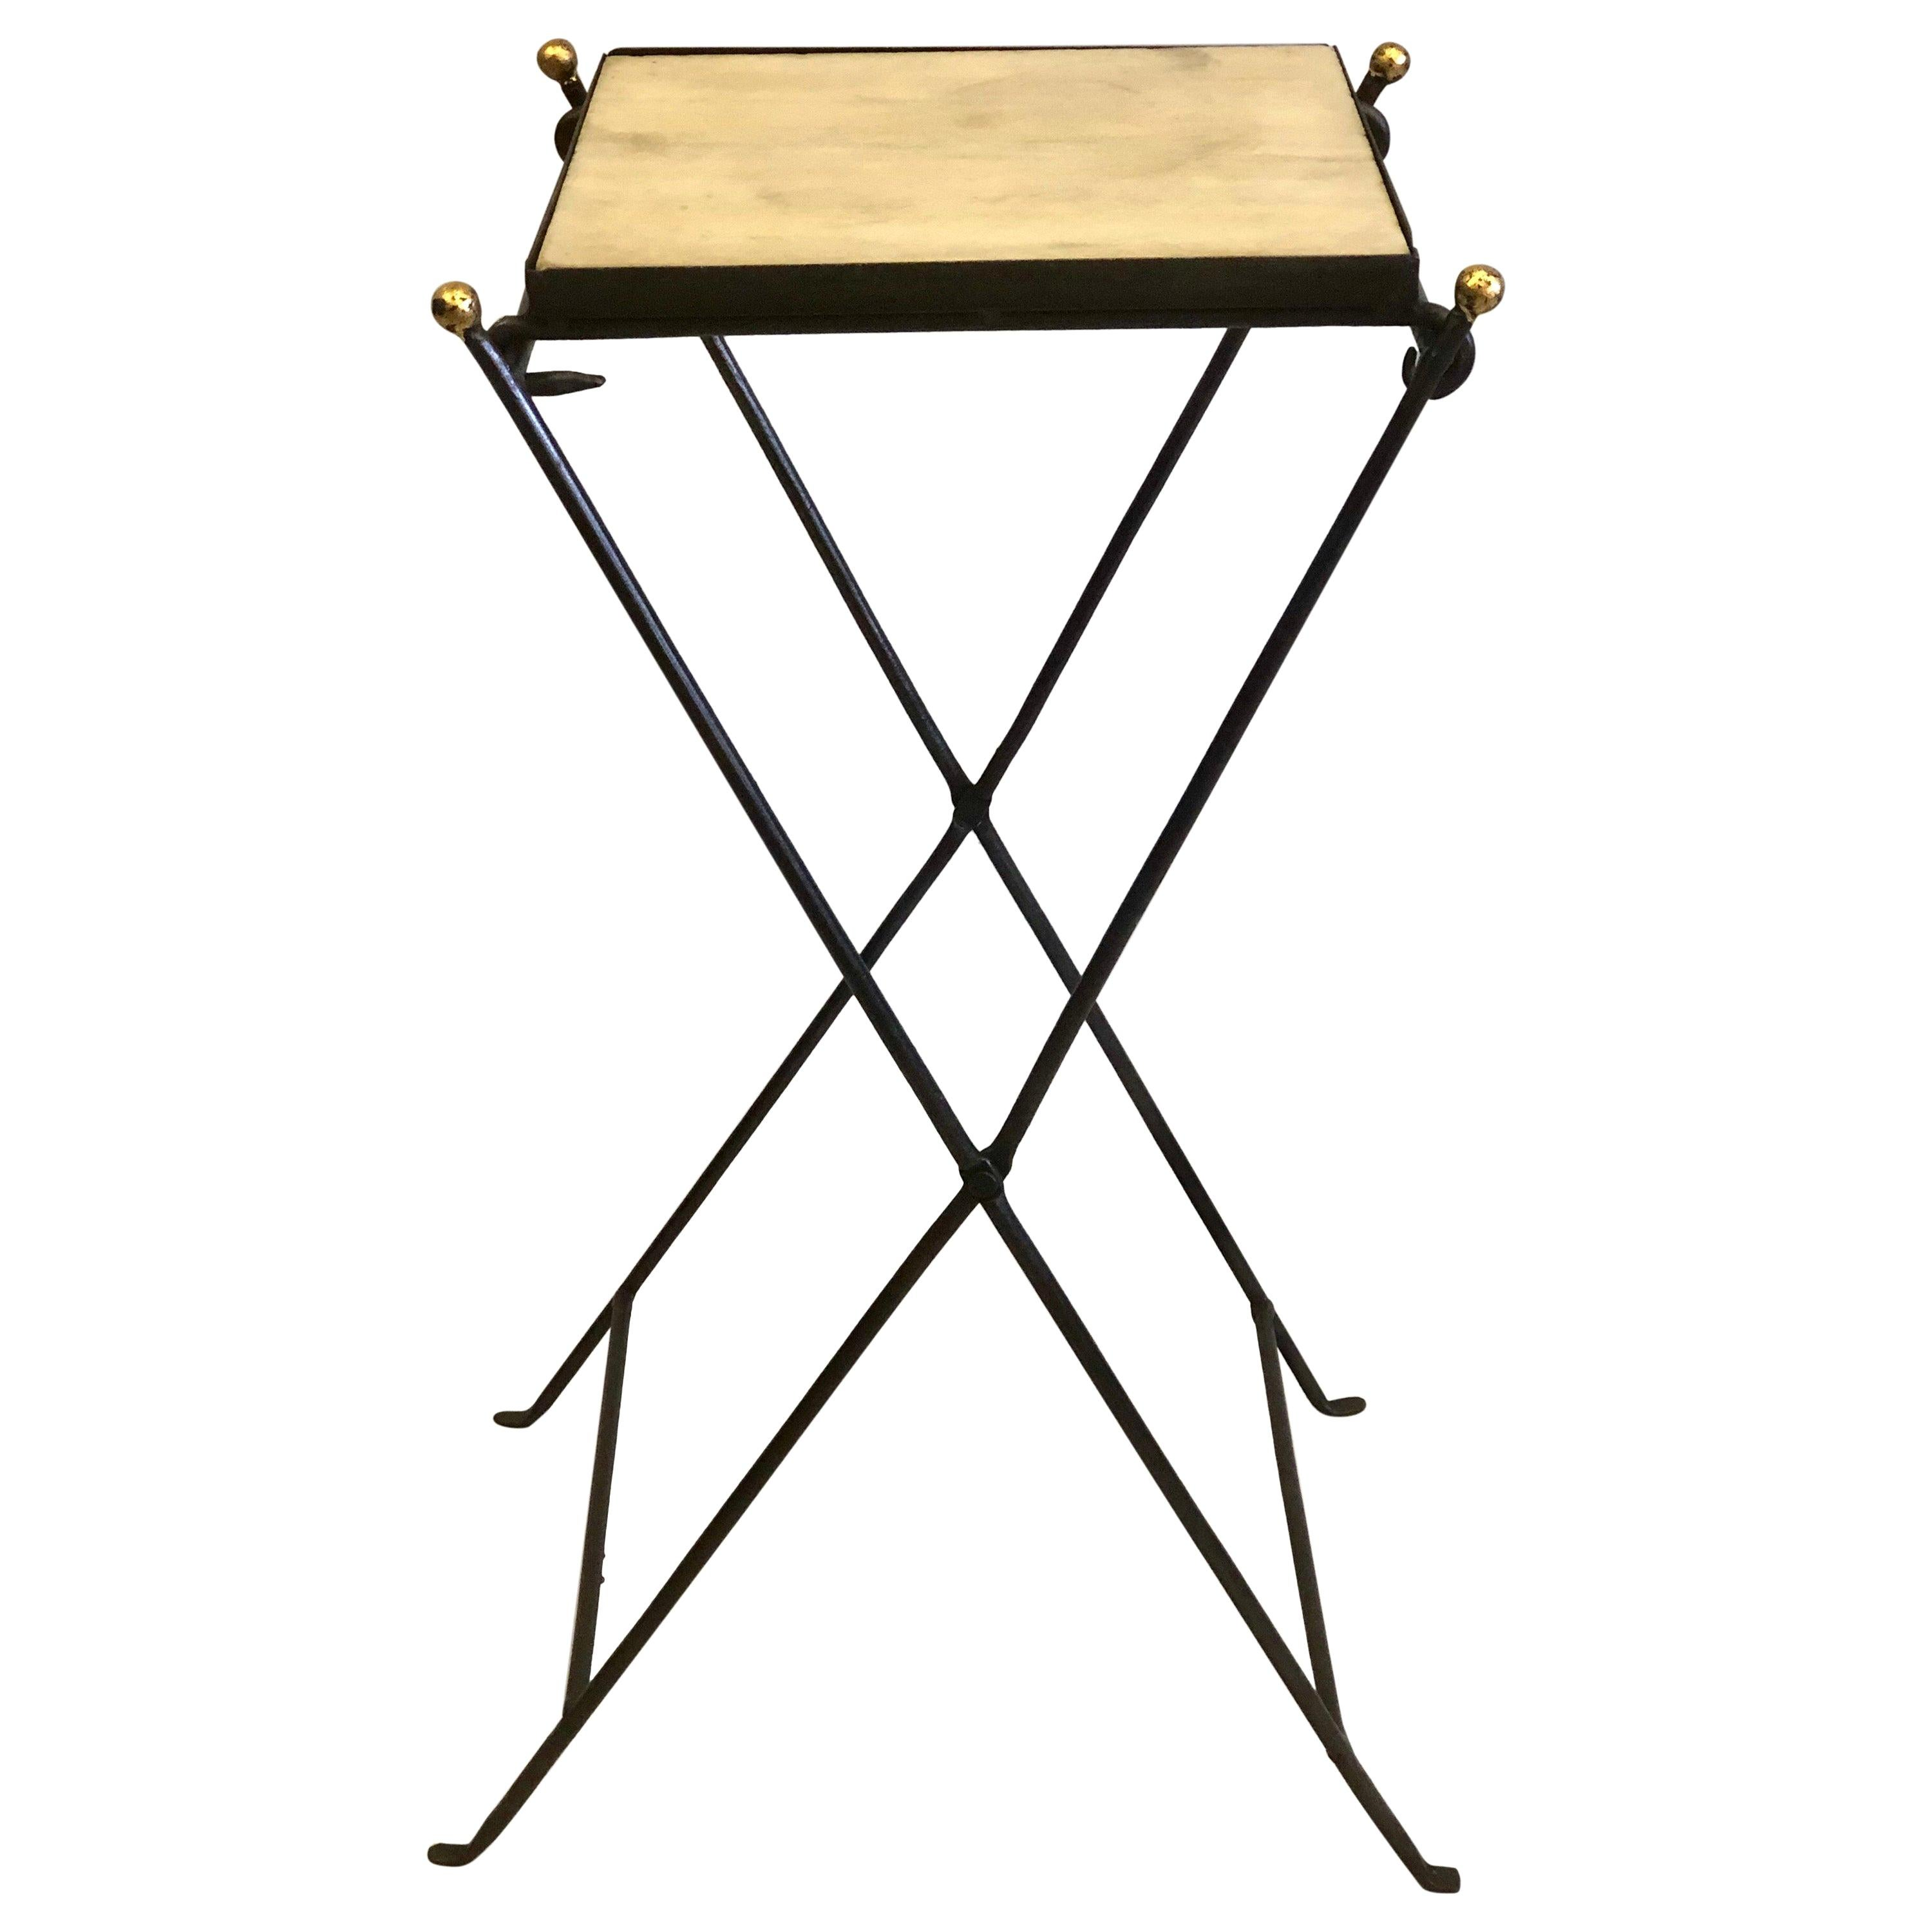 French Modern Neoclassical Iron and Marble Table in Manner of Jean-Michel Frank